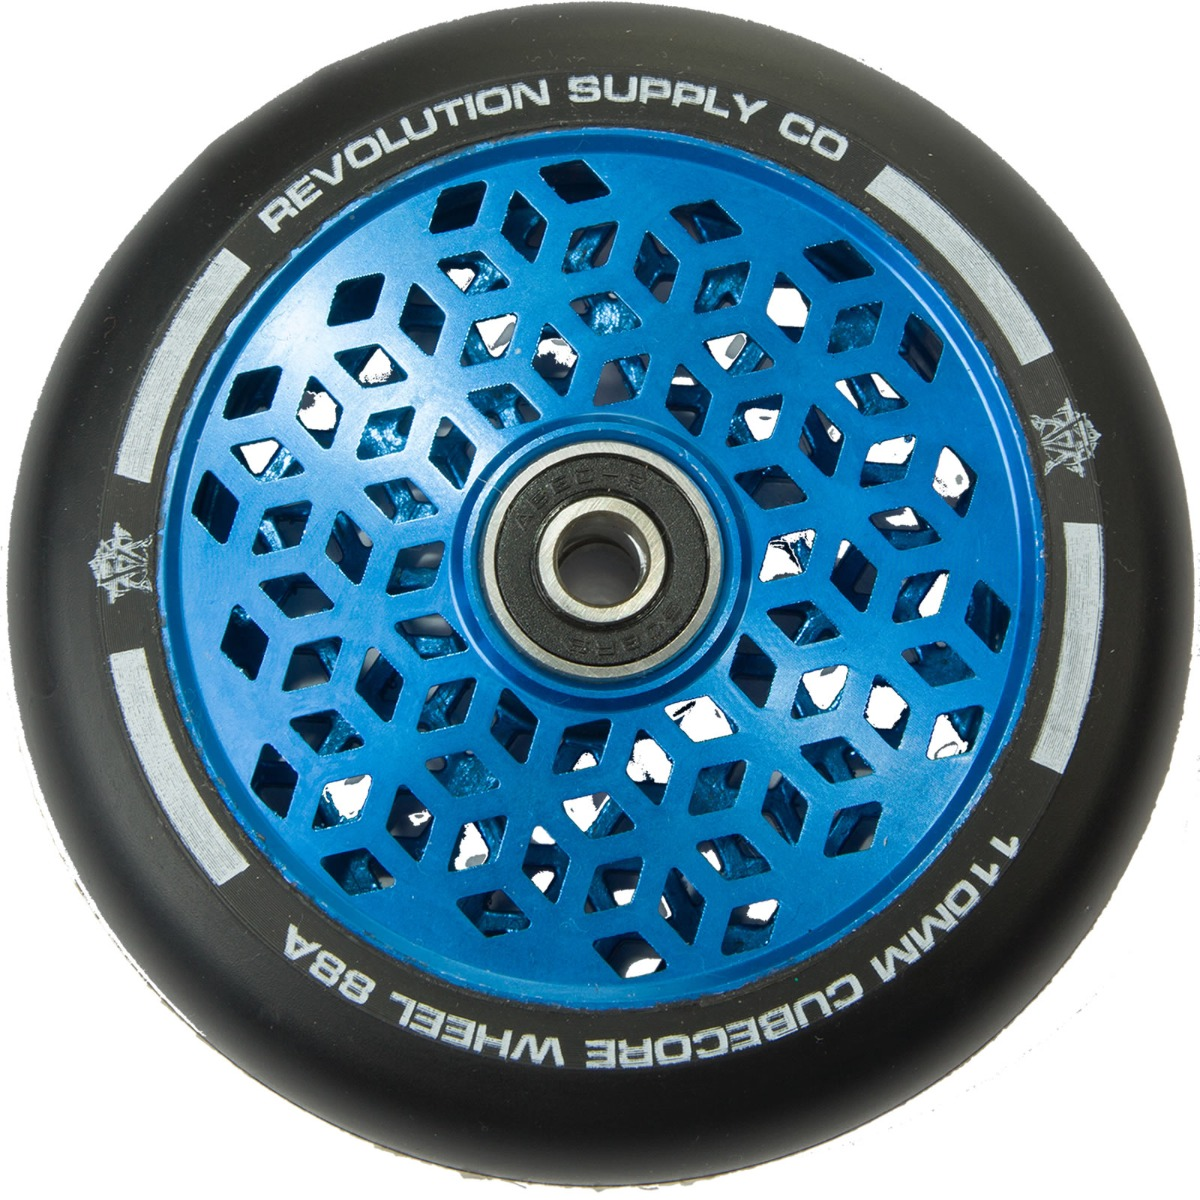 An image of Revolution Supply Cubed Core Ultralite 110mm Scooter Wheel - Blue